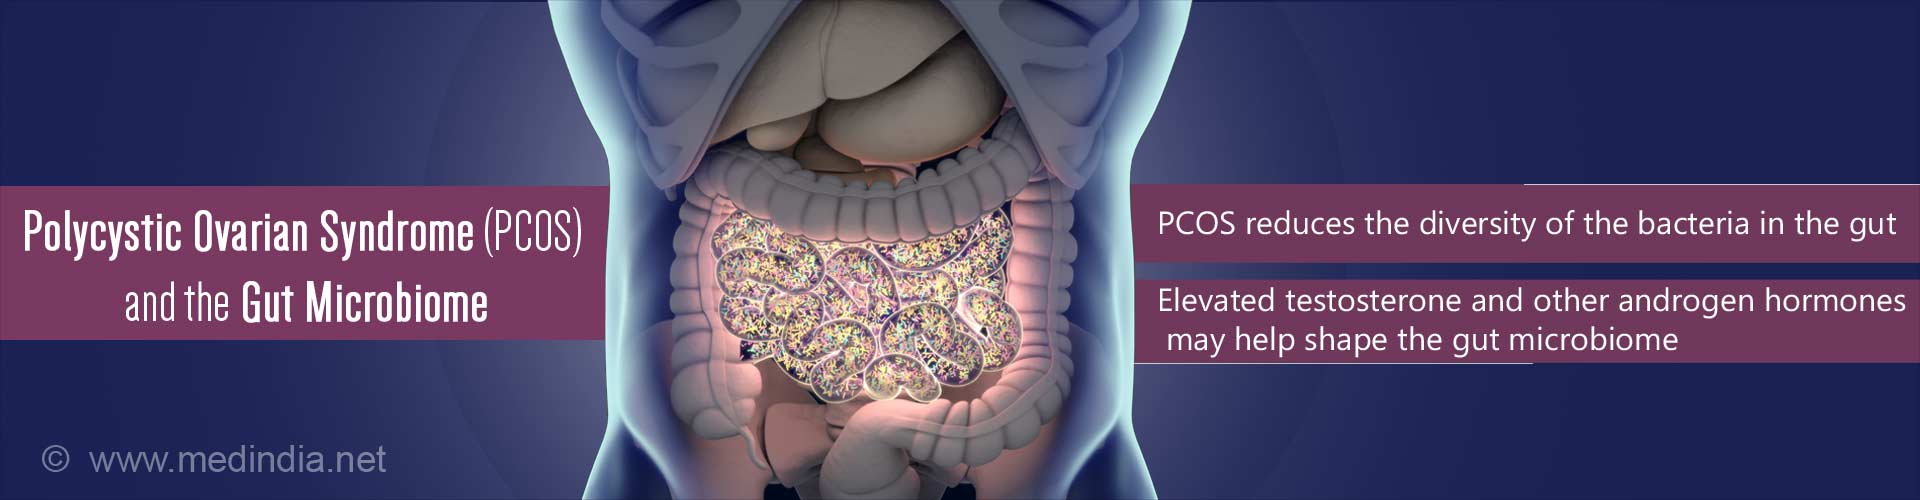 Polycystic ovarian syndrome (PCOS) and the gut microbiome - PCOS reduces the diversity of the bacteria in the gut - elevated testosterone and other androgen hormones may help shape the gut microbiome